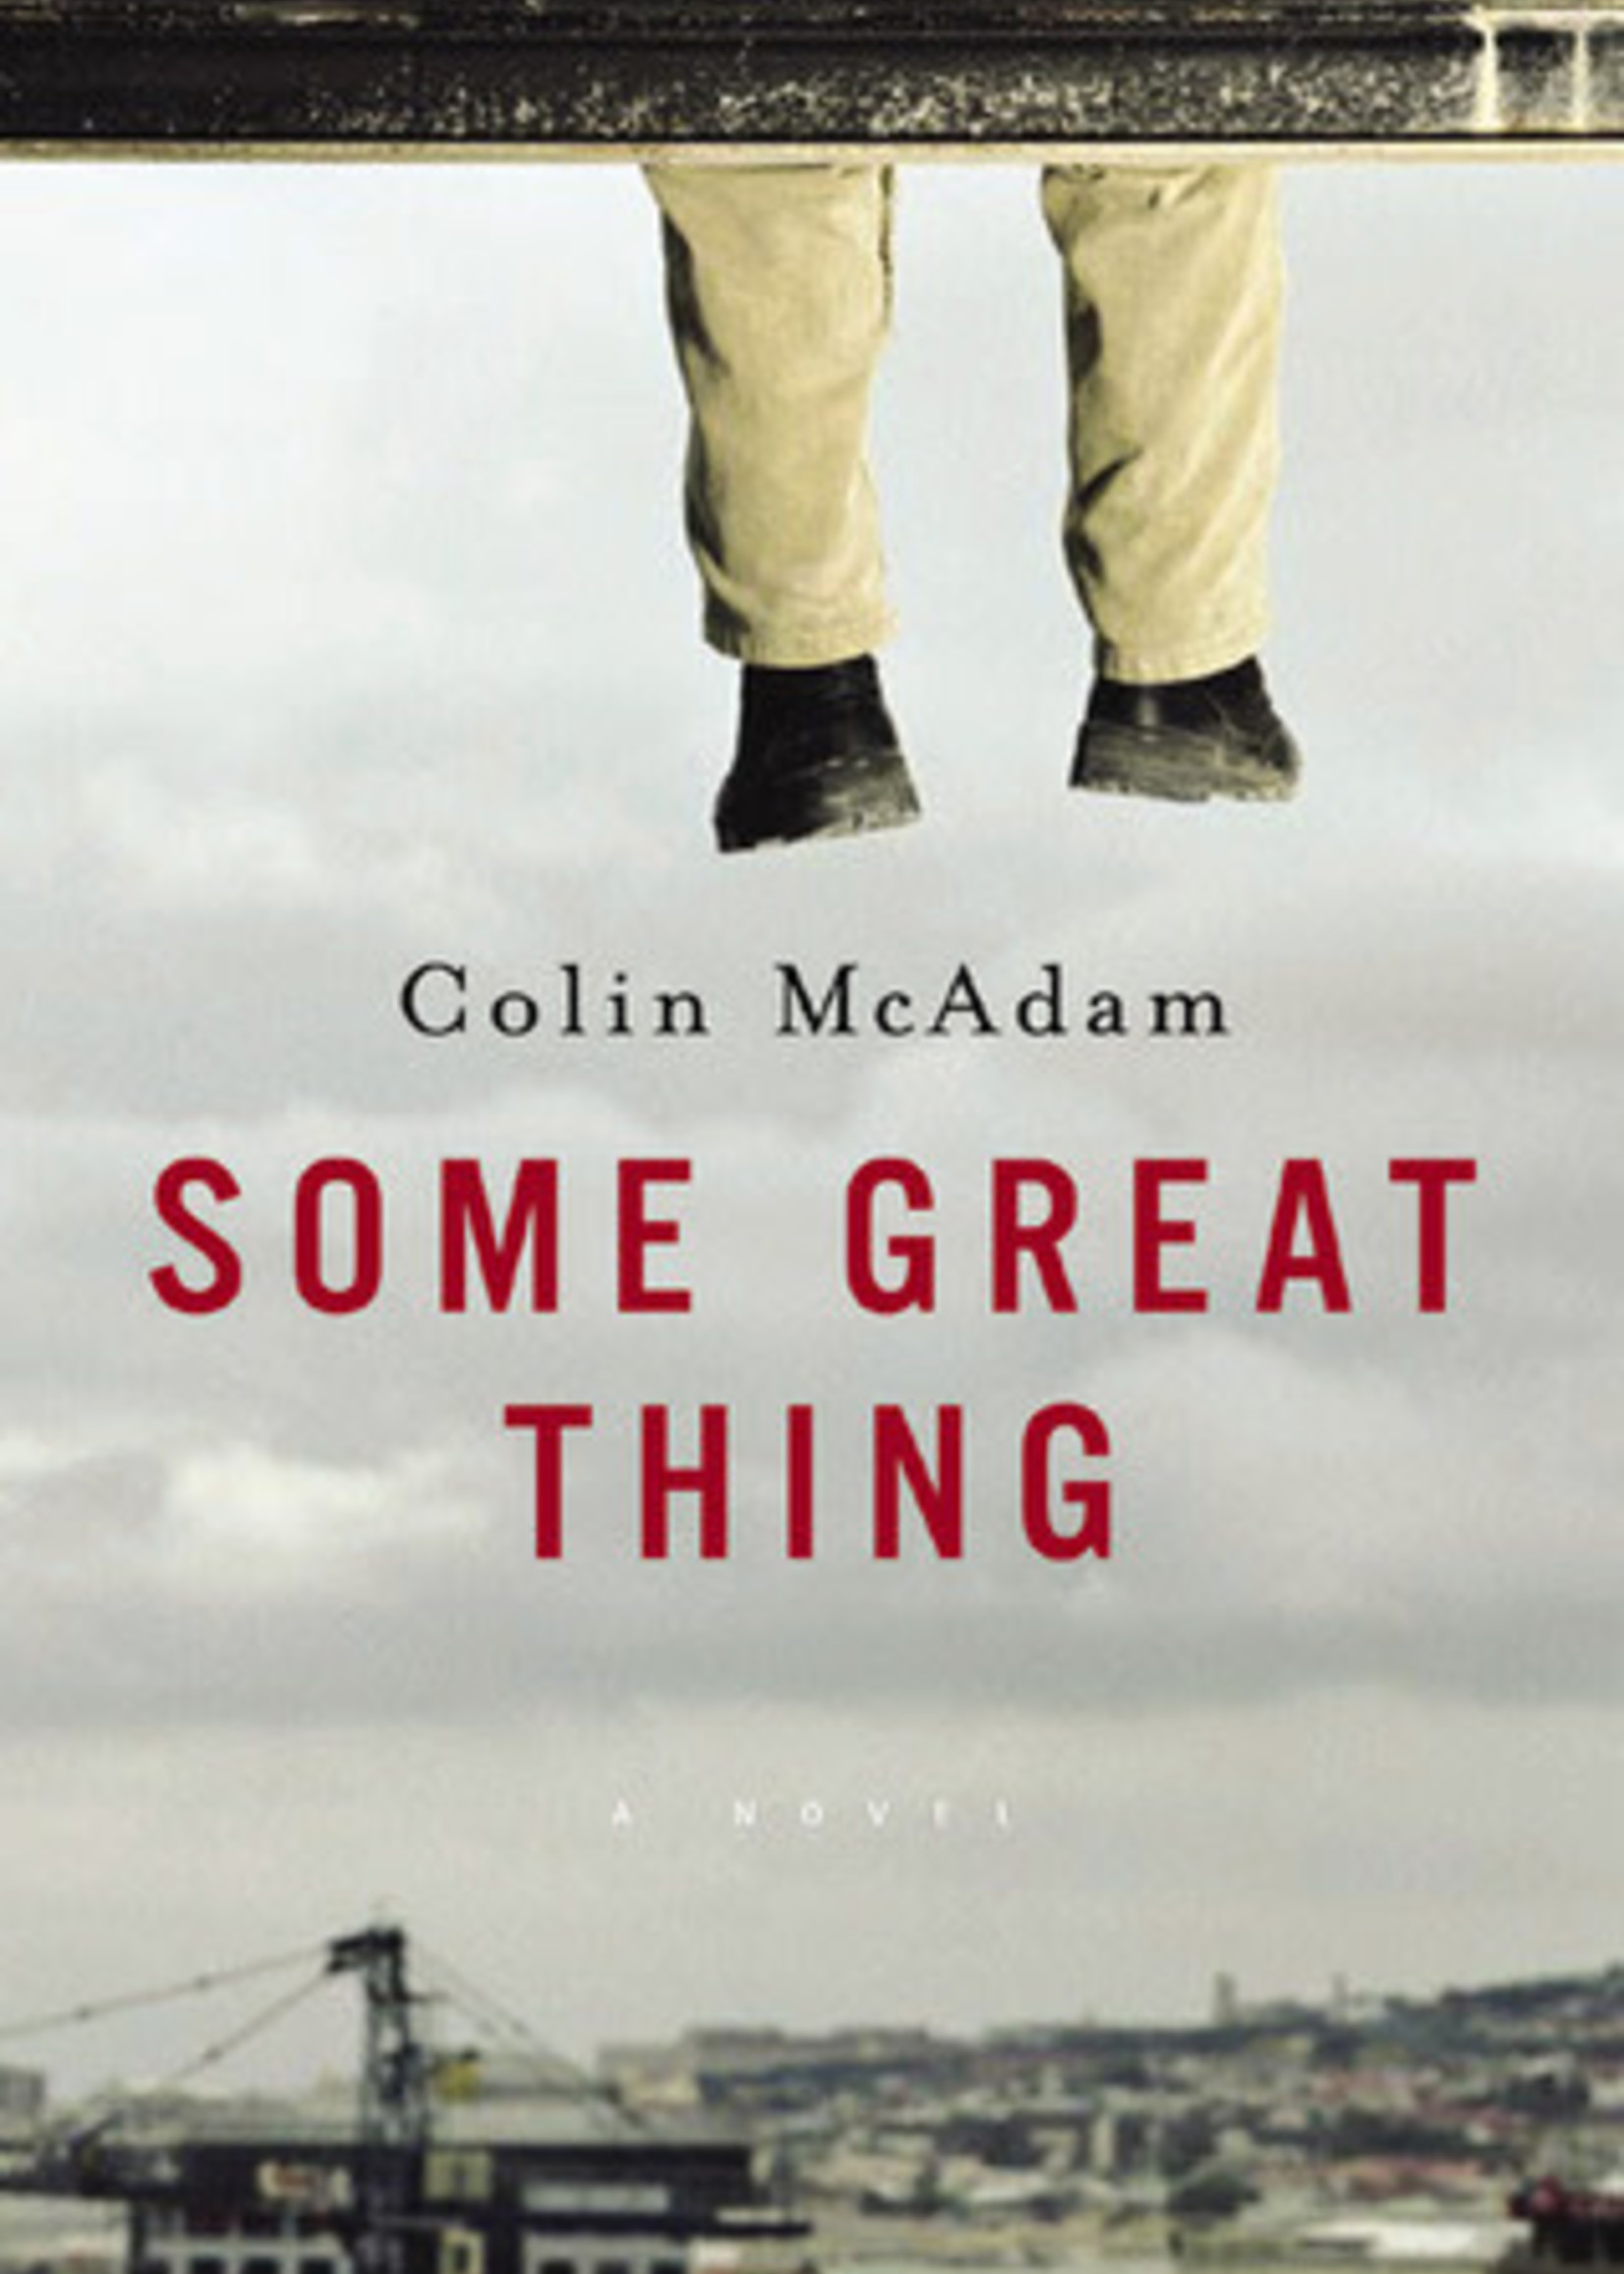 USED - Some Great Thing by Colin McAdam